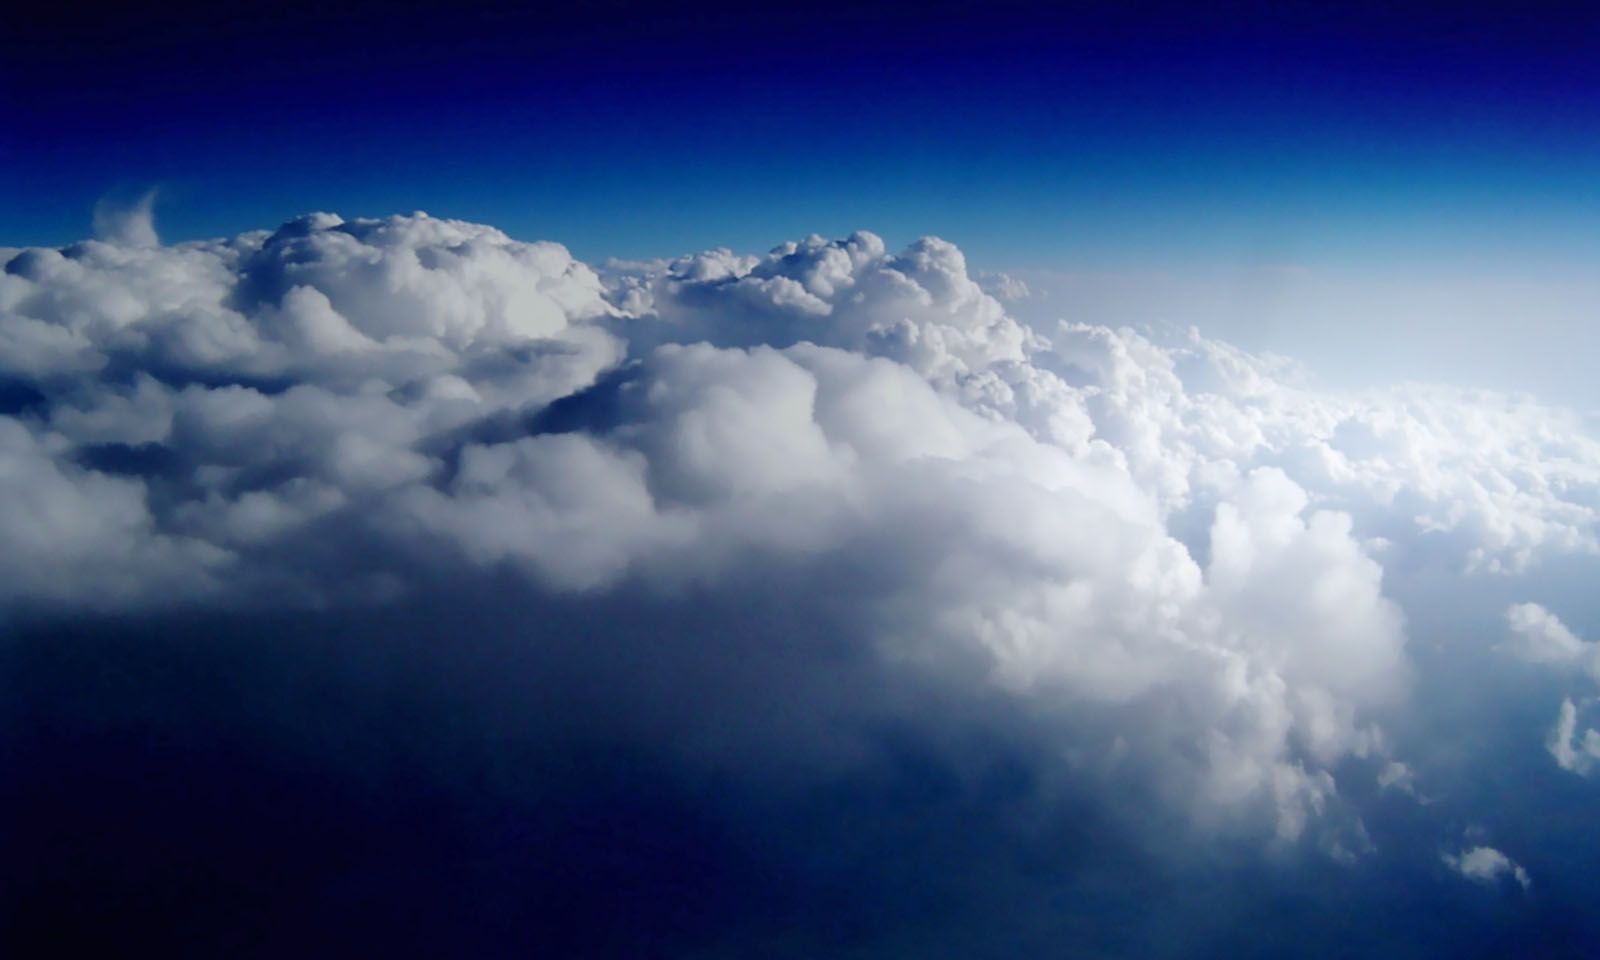 Clouds are formed by condensed water vapour